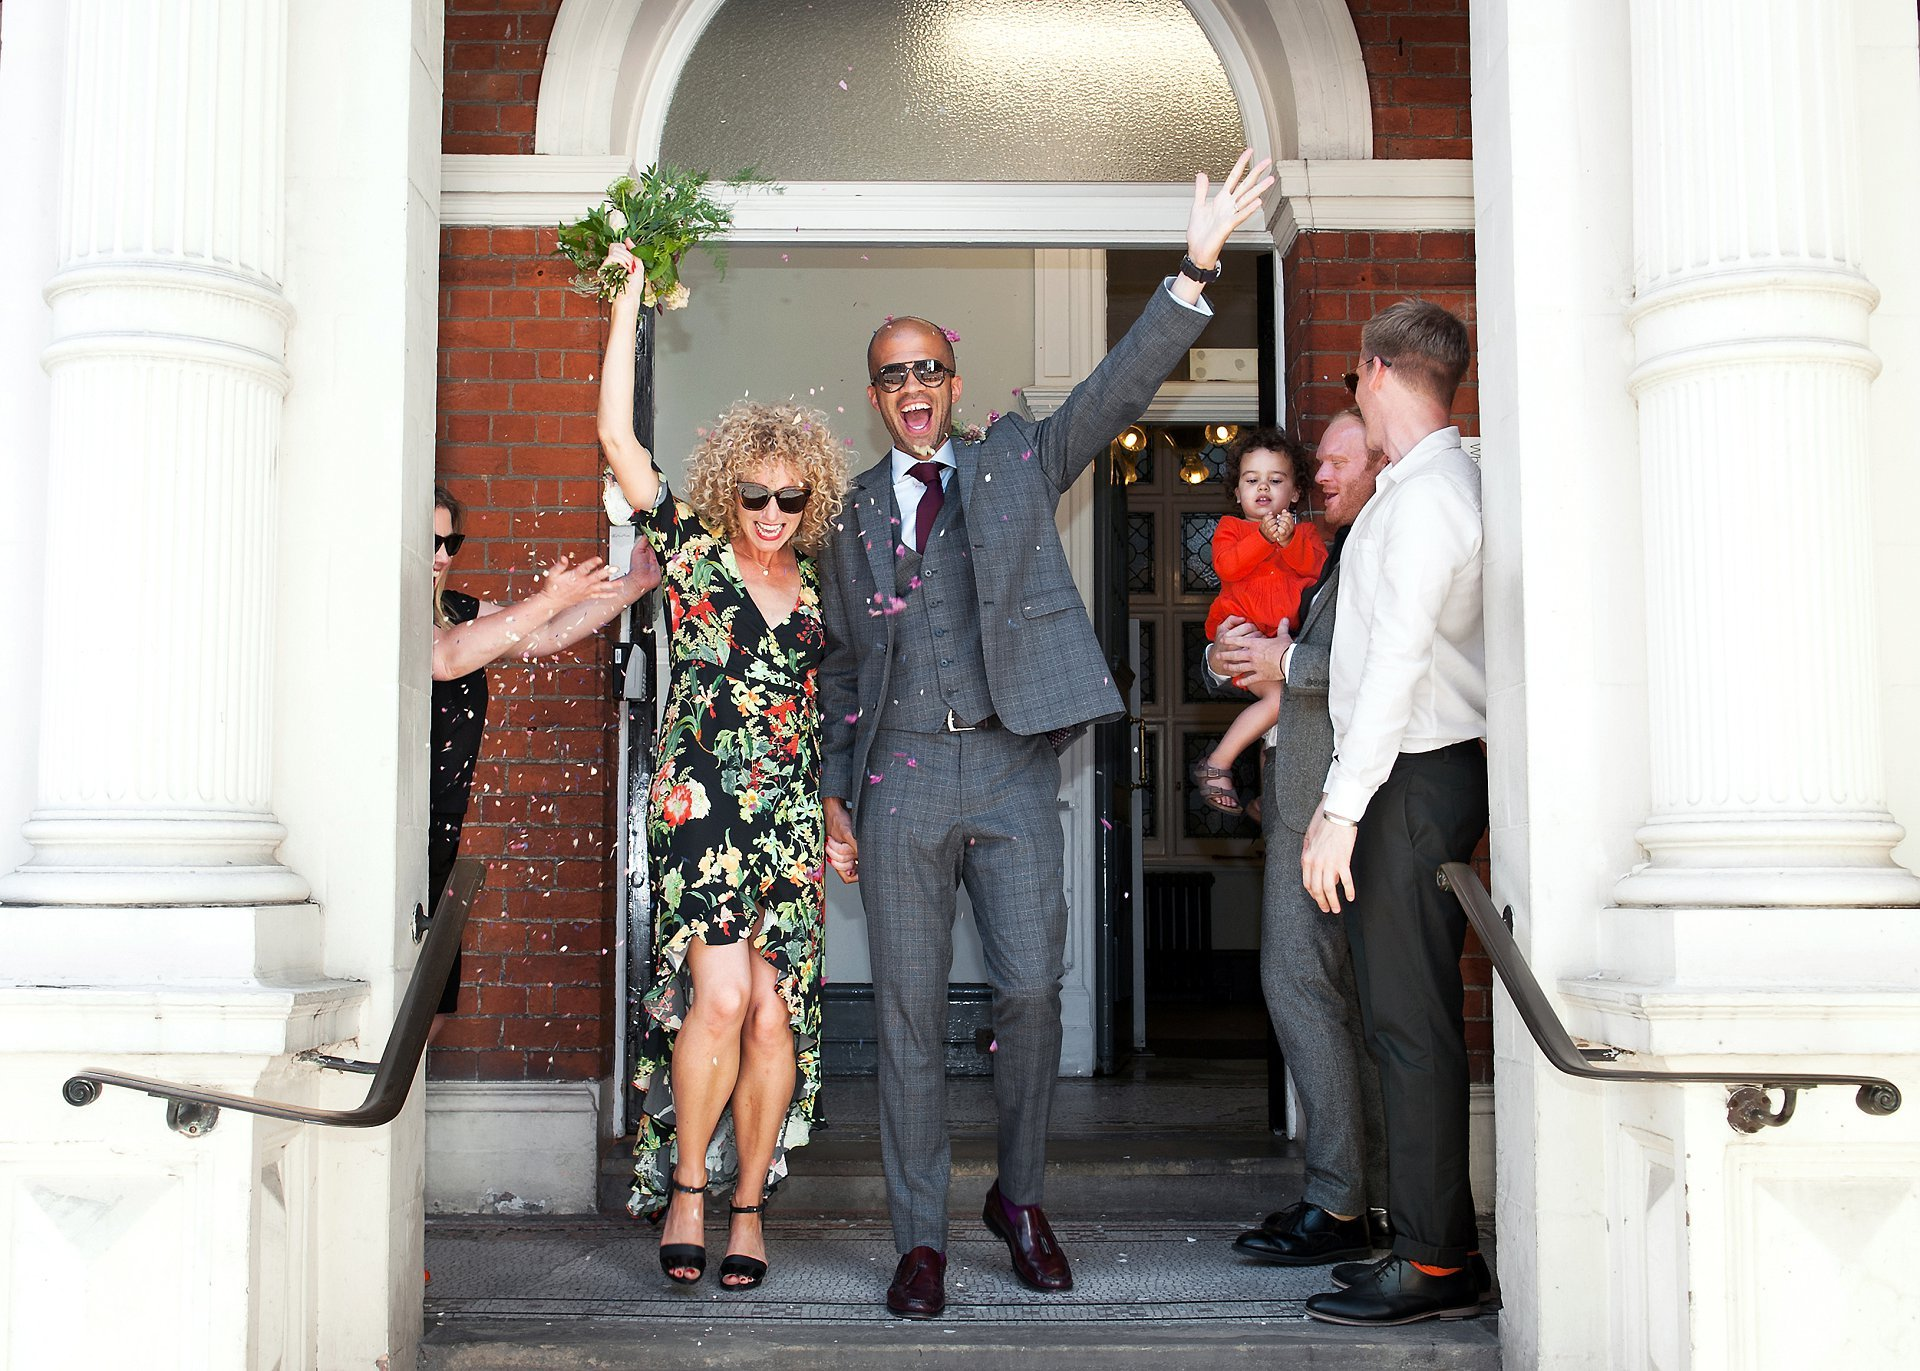 London wedding photographer Mayfair Library - a couple leaving Mayfair Library, wearing shades, holding their arms aloft in celebration of their Westminster Register Office wedding